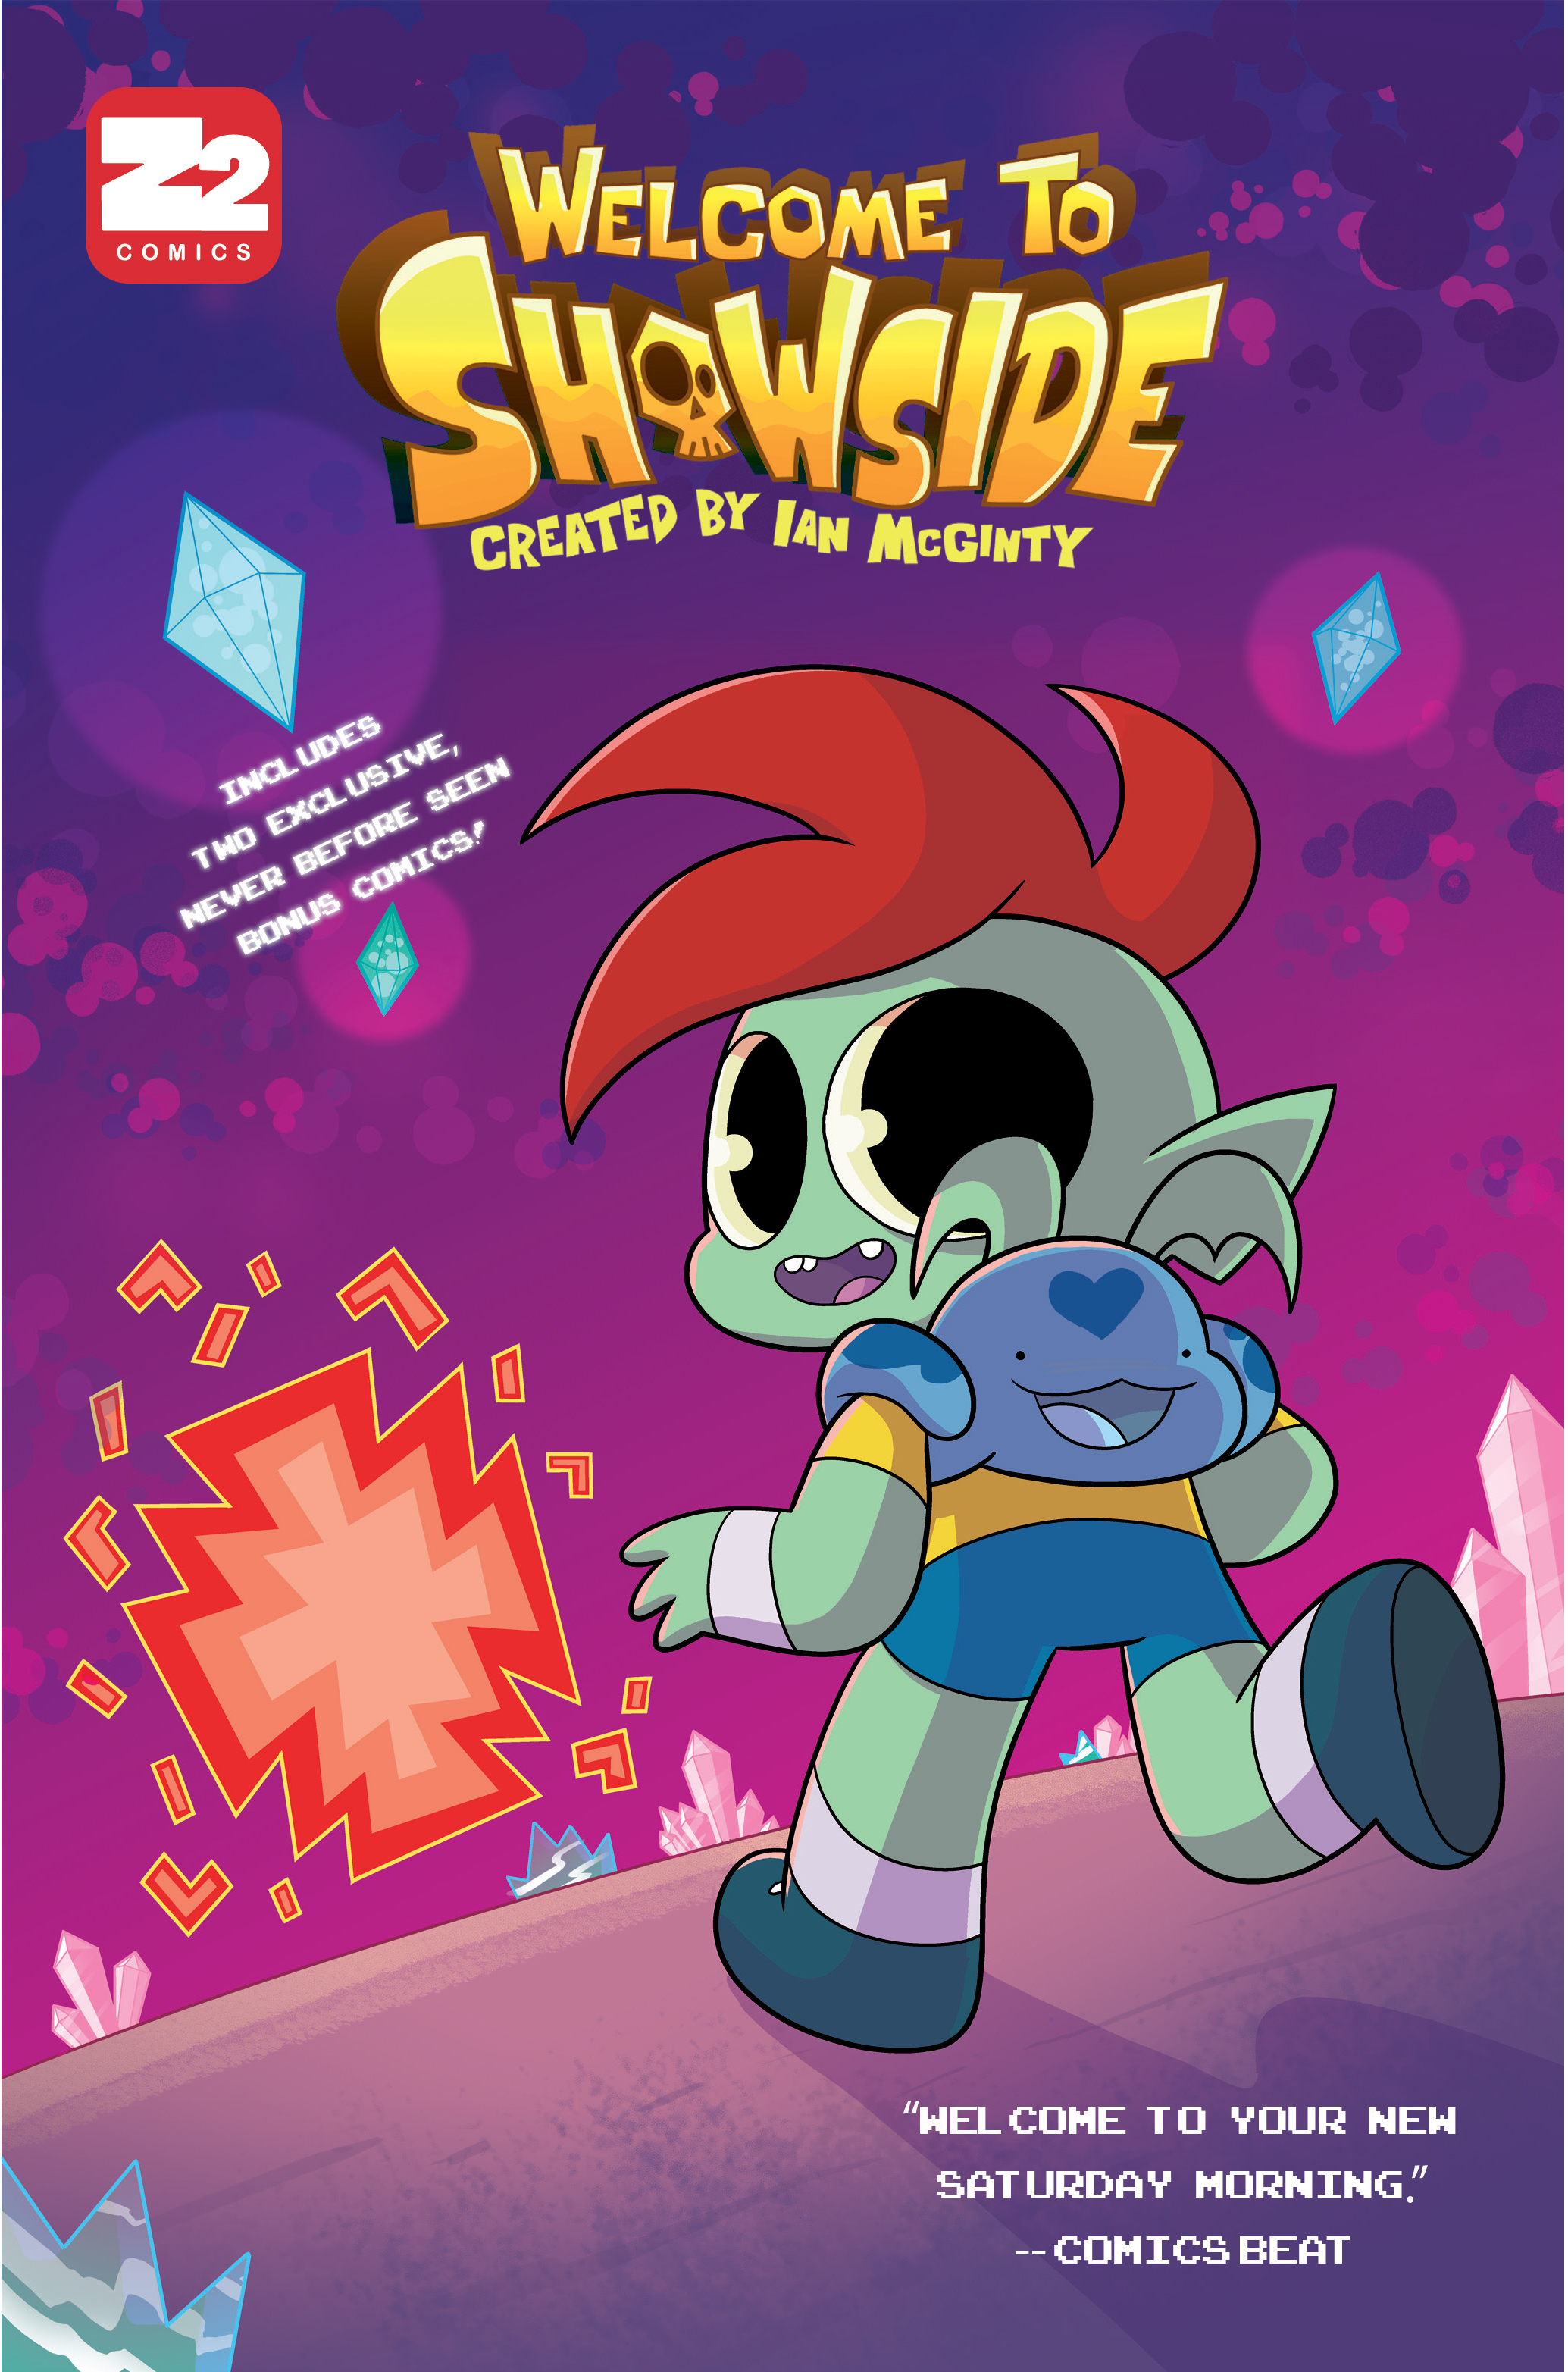 Welcome to Showside: By Ian McGinty   Showside is just your average southern town, except that portals to the Nexus realm keep popping up and flooding the town with demons and monsters. The only thing keeping Showside safe is Kit and his friends Belle and Moon. From the writer/artist of Adventure Time Candy Capers and Bravest Warrior comes an all ages romp with a horror twist.